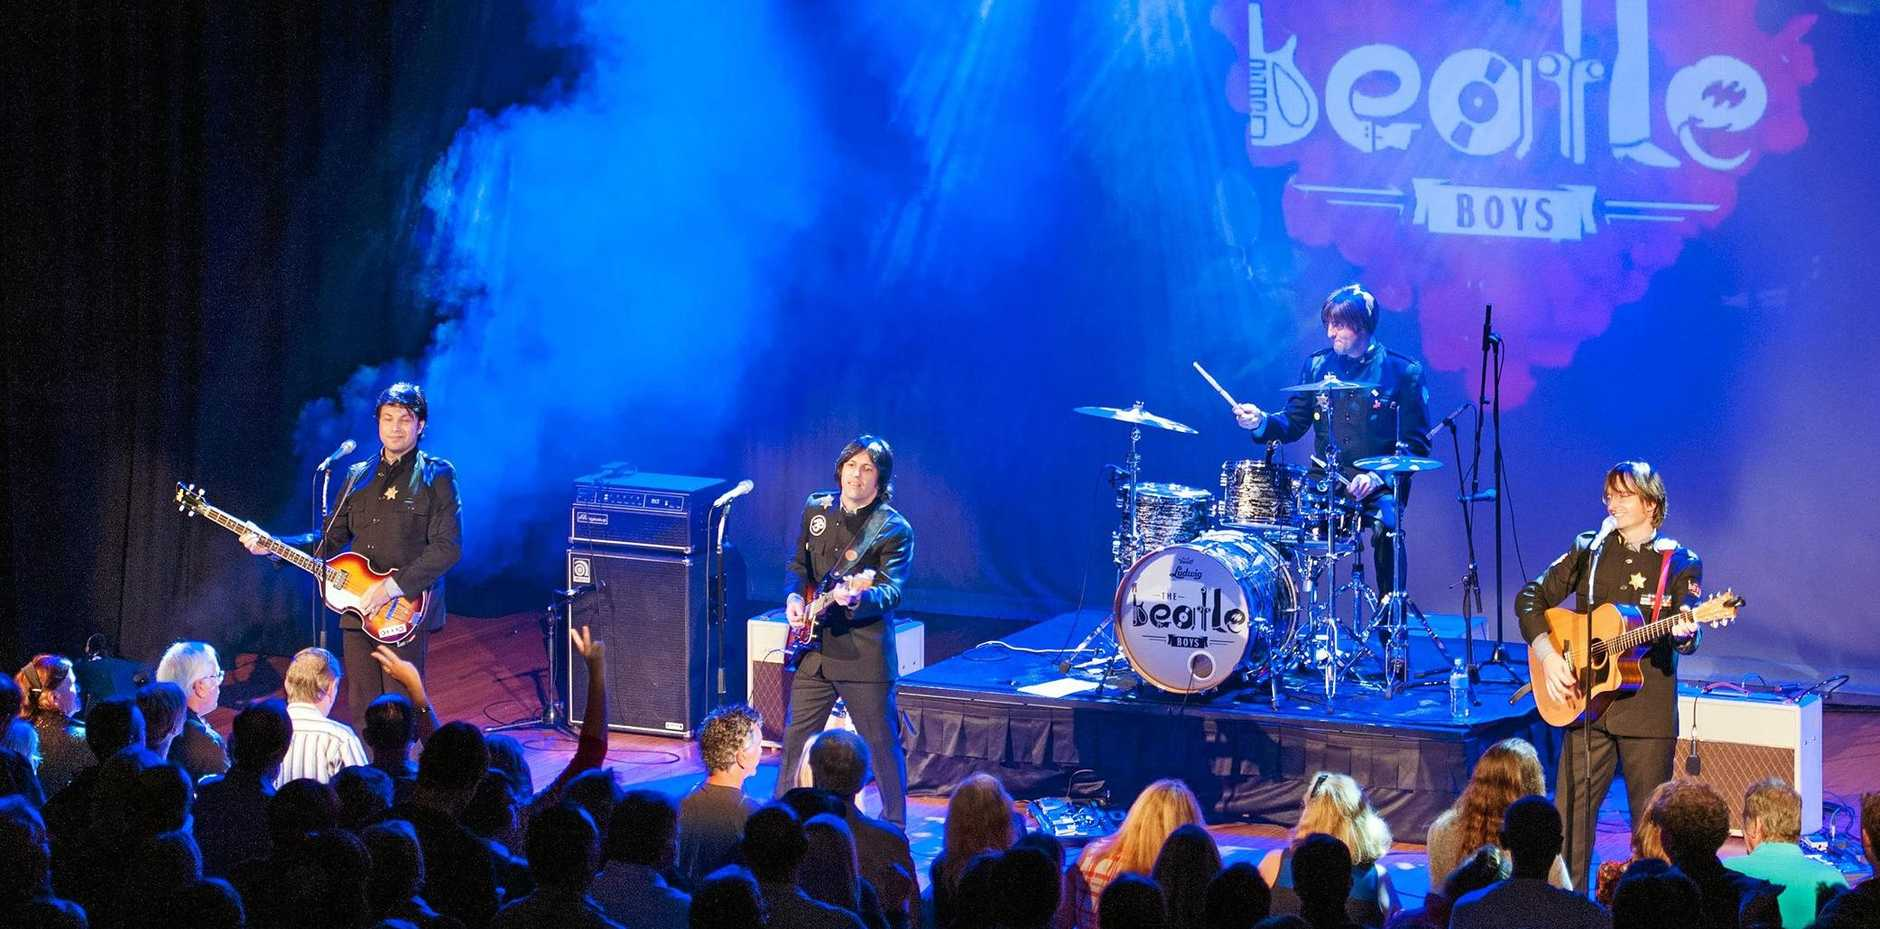 50 YEARS ON: Rock along to one sensational two-hour concert experience presented by the world's Premier 'Beatles' band, the sensational Beatle Boys on Saturday, February 23 at the Qpac Concert Hall, Brisbane.